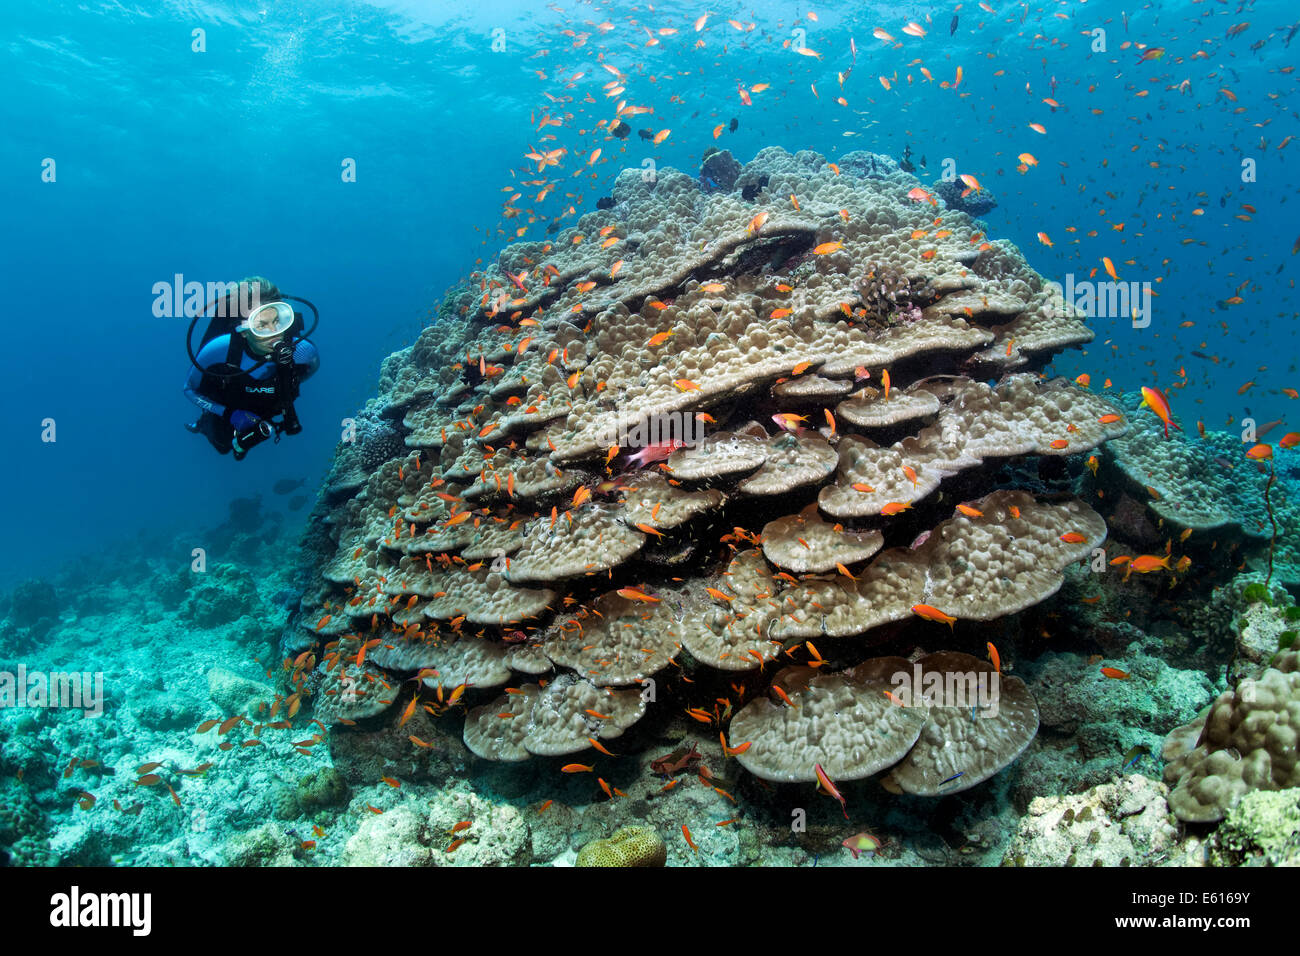 Scuba Diver looking at a large stone coral with Anthias (Anthiinae), Lhaviyani Atoll, Indian Ocean, Maldives - Stock Image